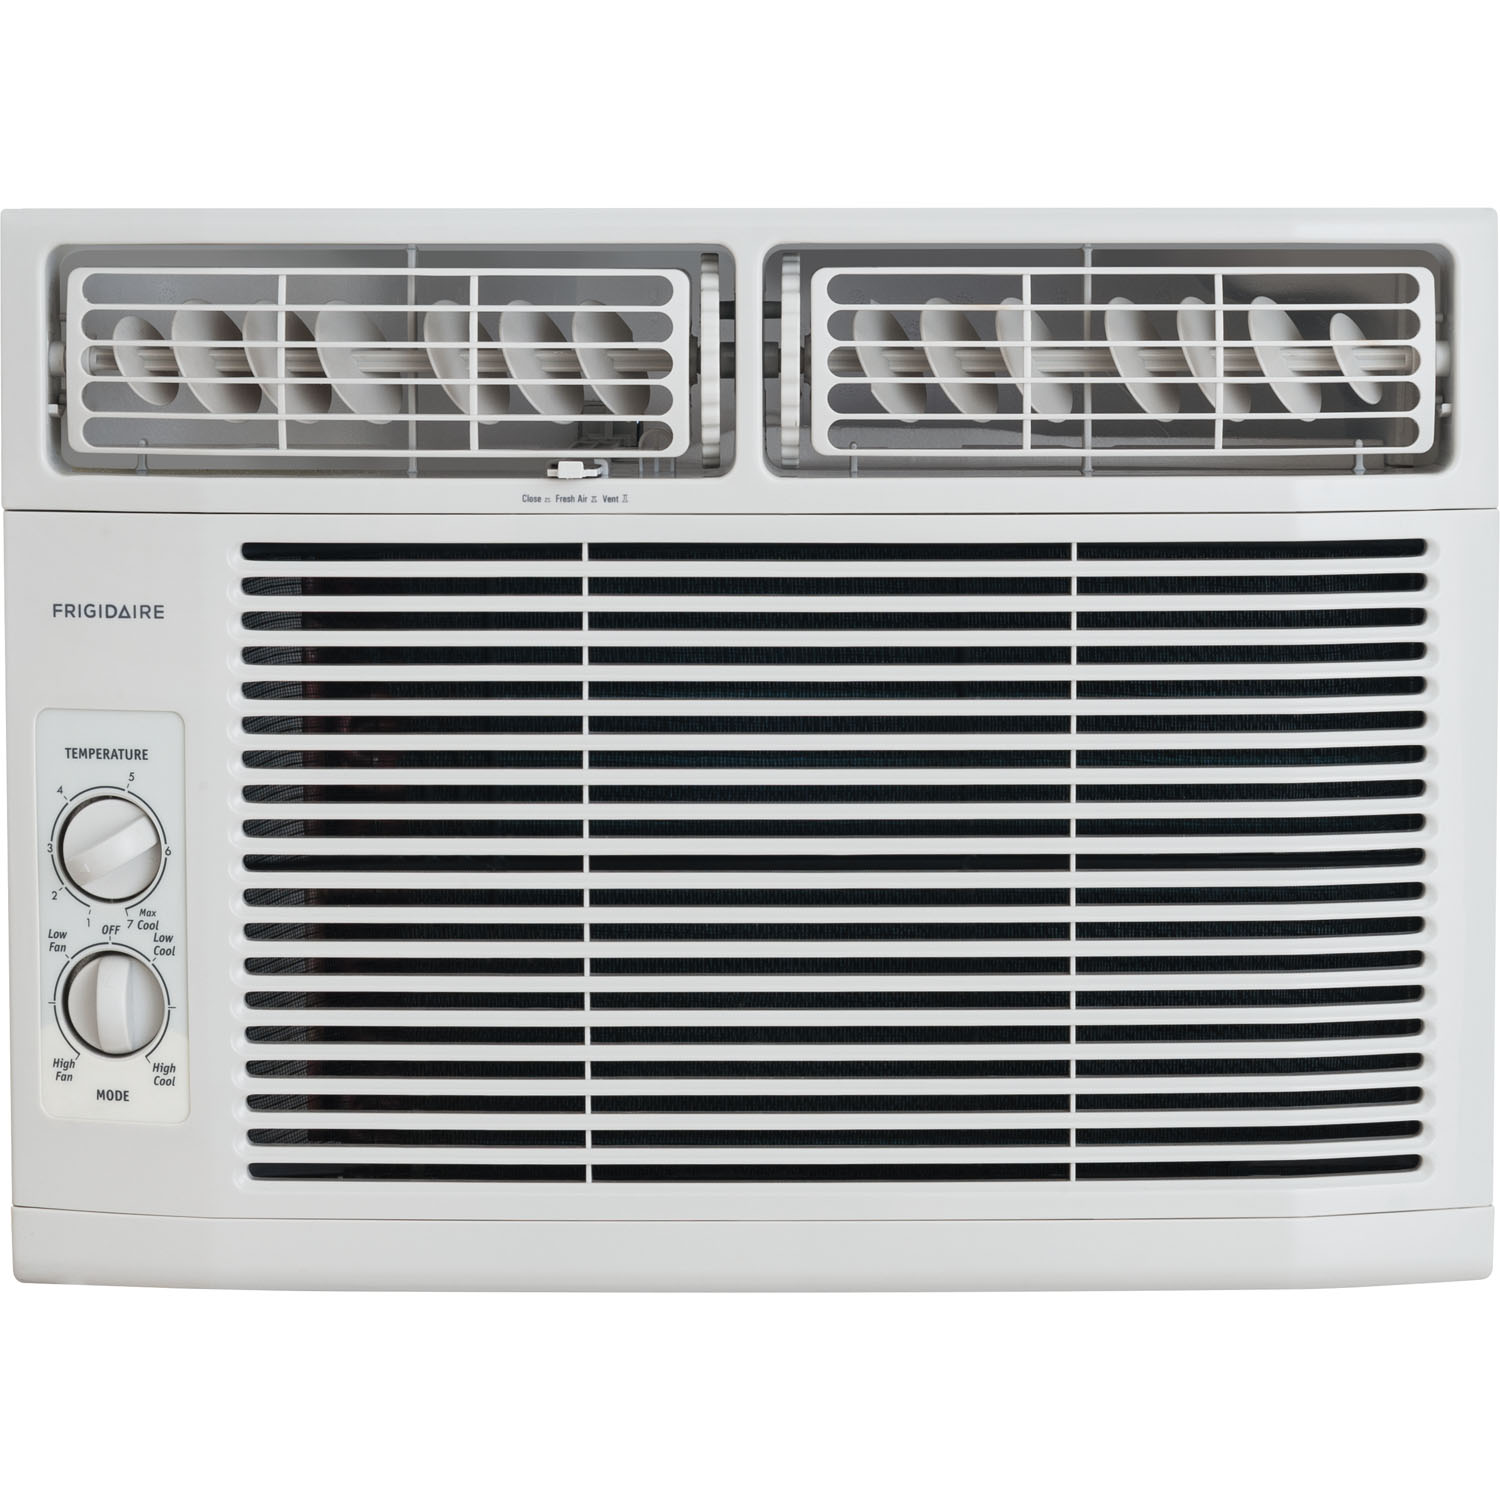 Frigidaire FFRA1211R1 12,000-BTU 115V Window Mounted Compact Air Conditioner with Remote Control